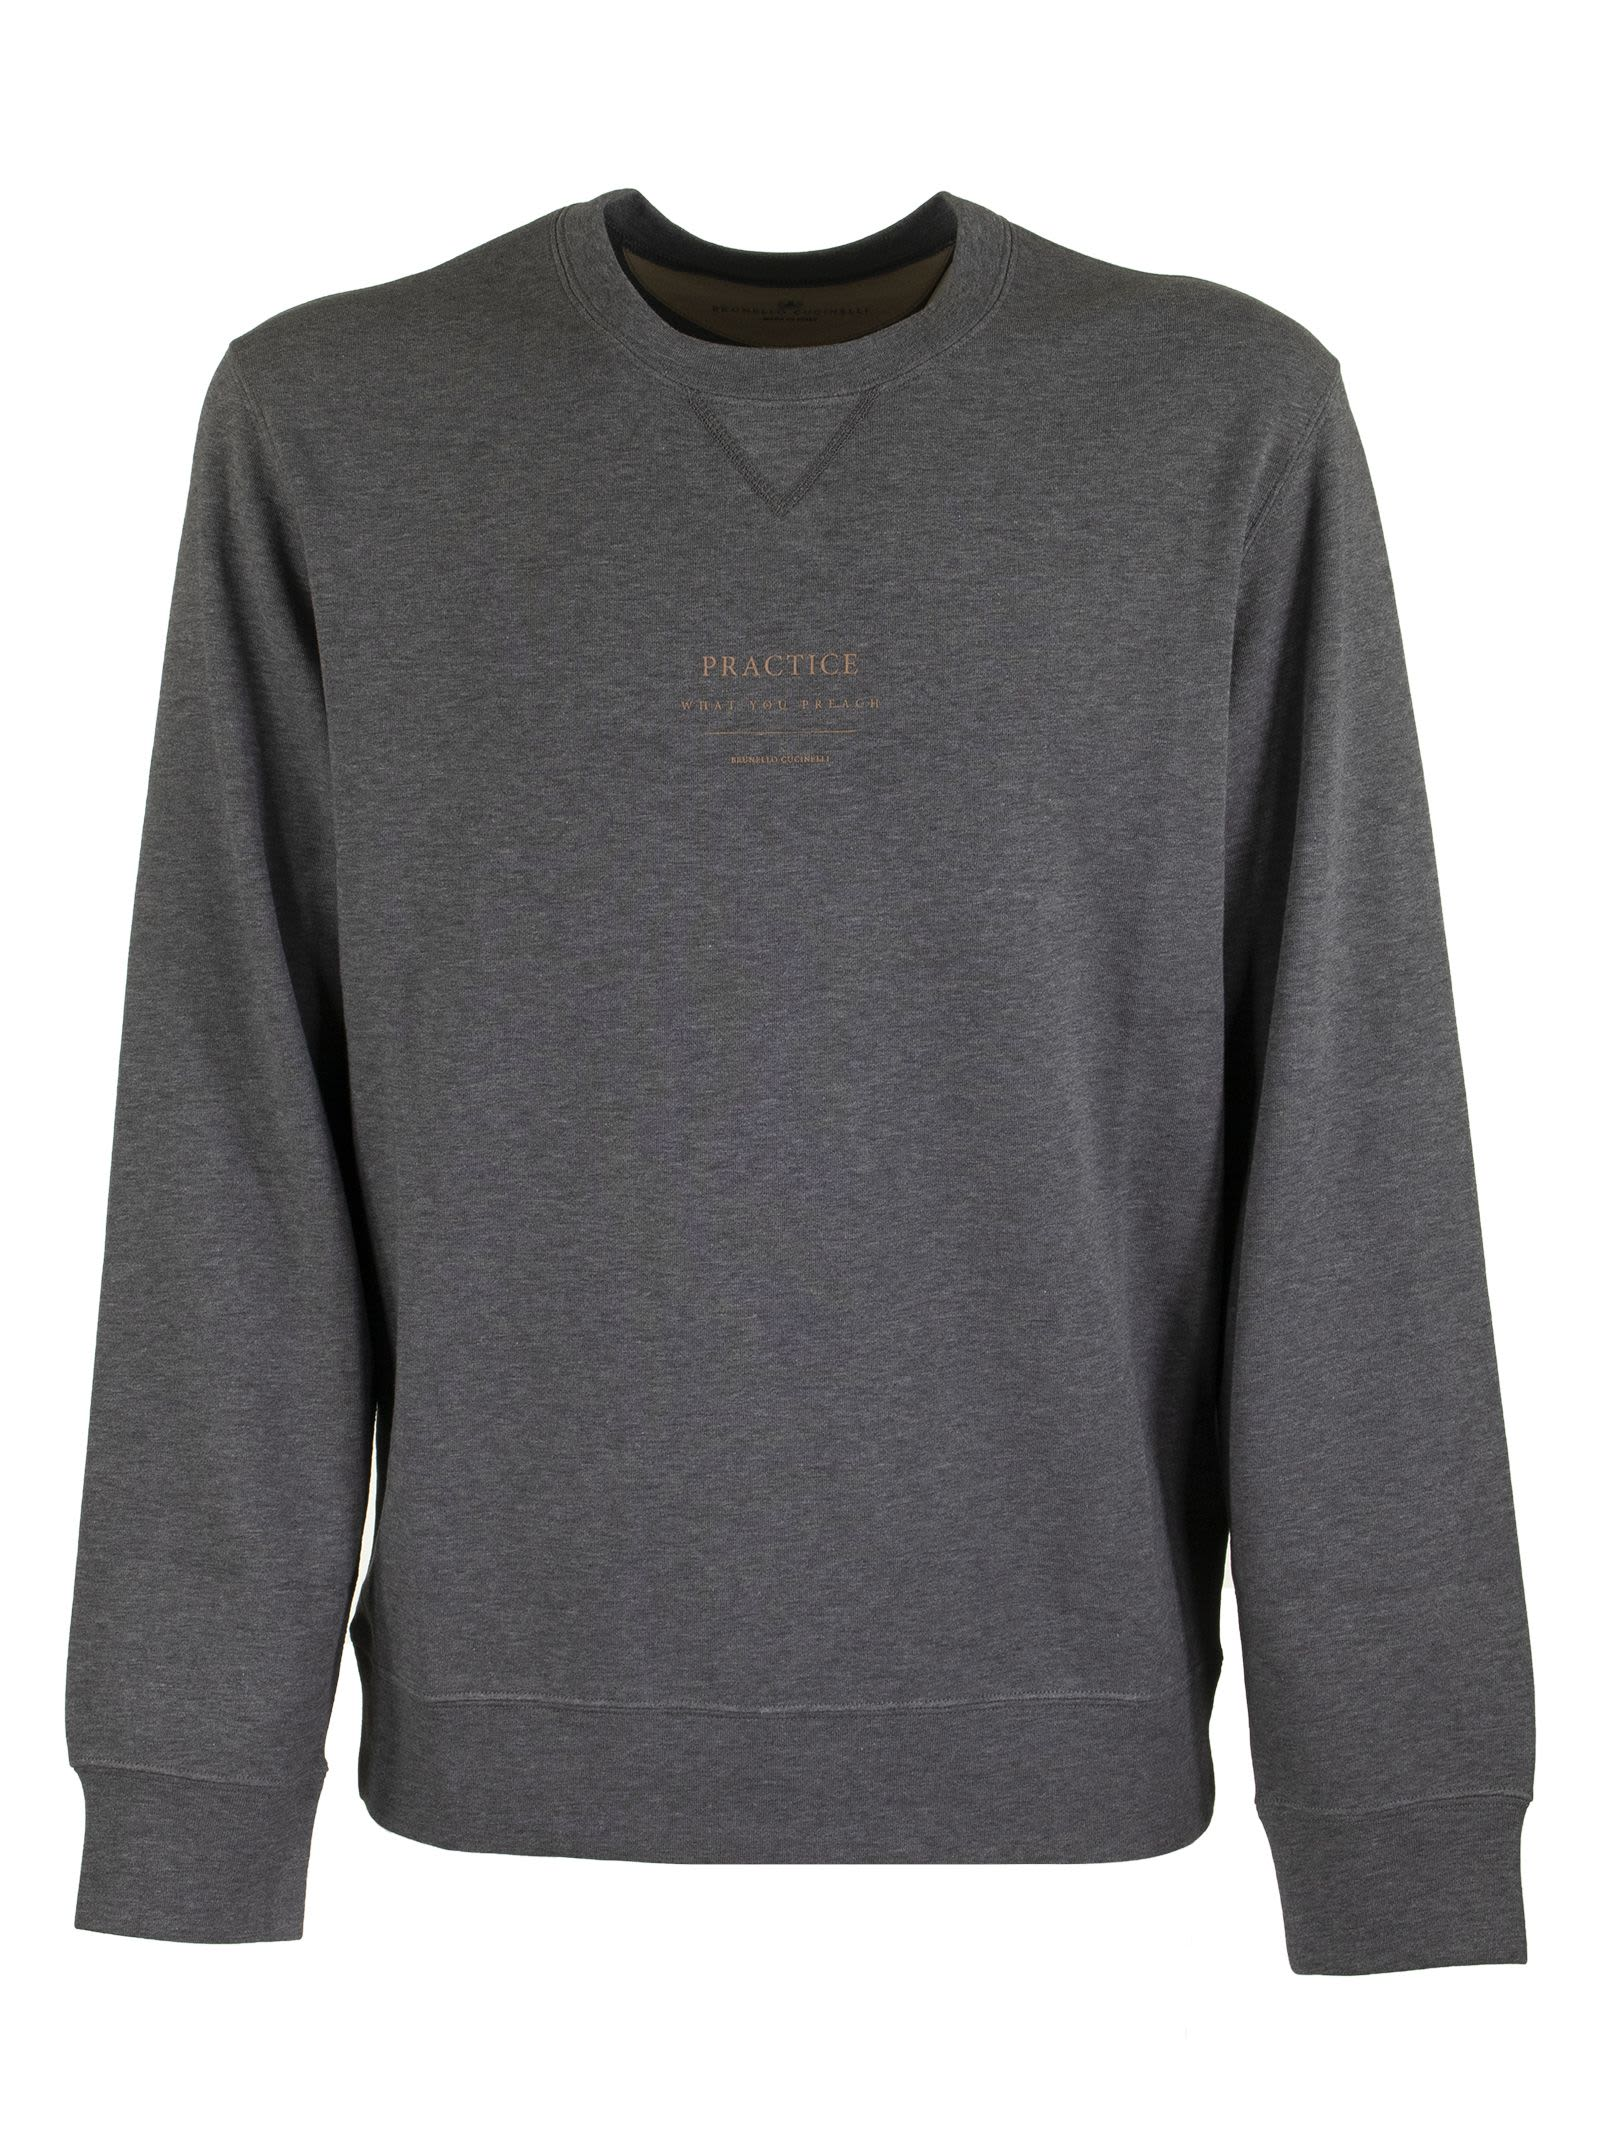 Brunello Cucinelli Cotton Sweatshirt With Central Writing